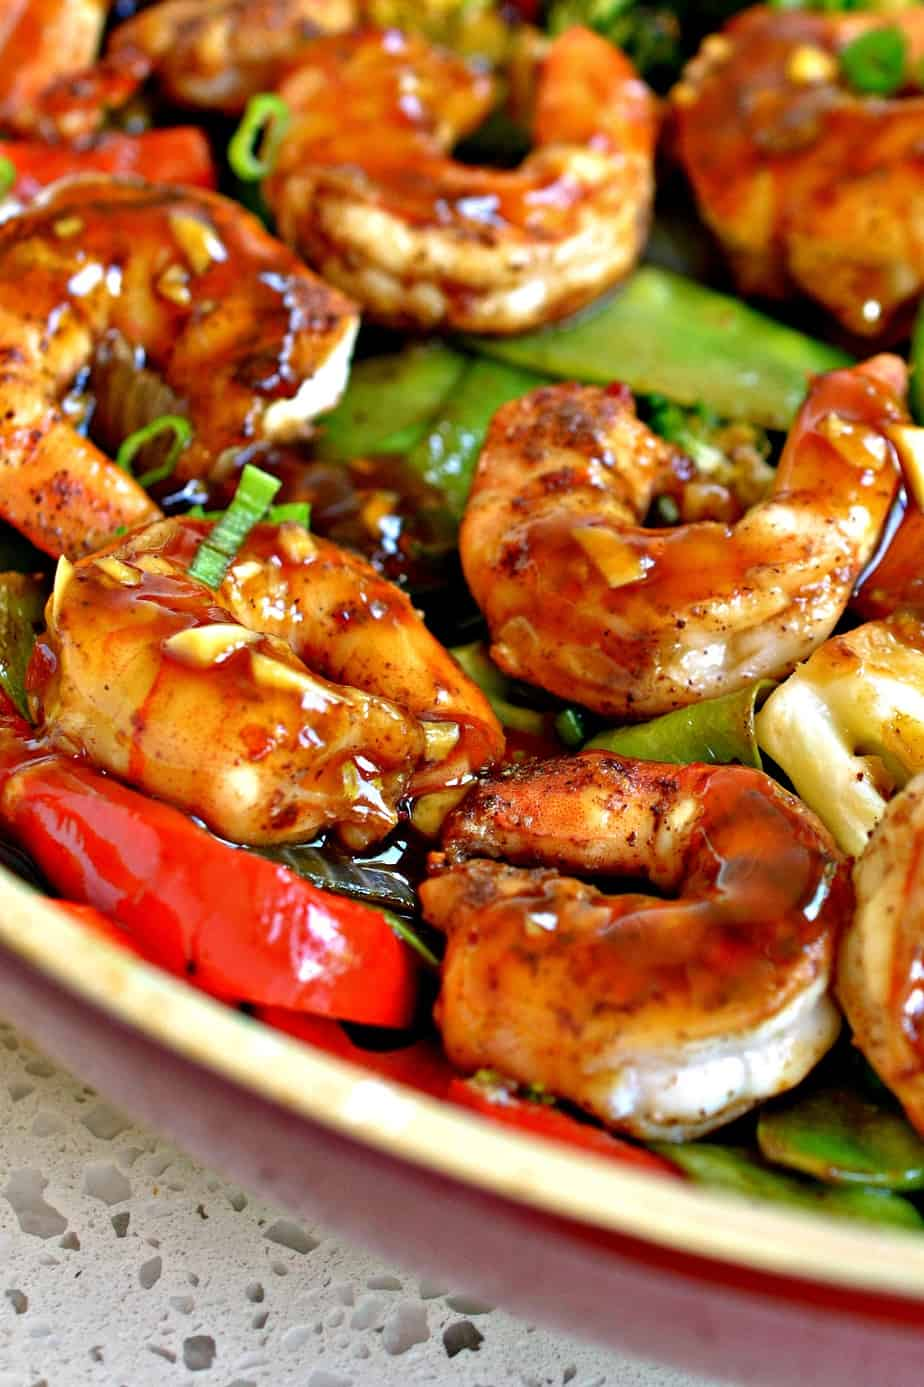 Garlic Shrimp Stir Fry brings together broccoli, snow peas, red bell pepper, onion and succulent shrimp in a honey garlic sauce.